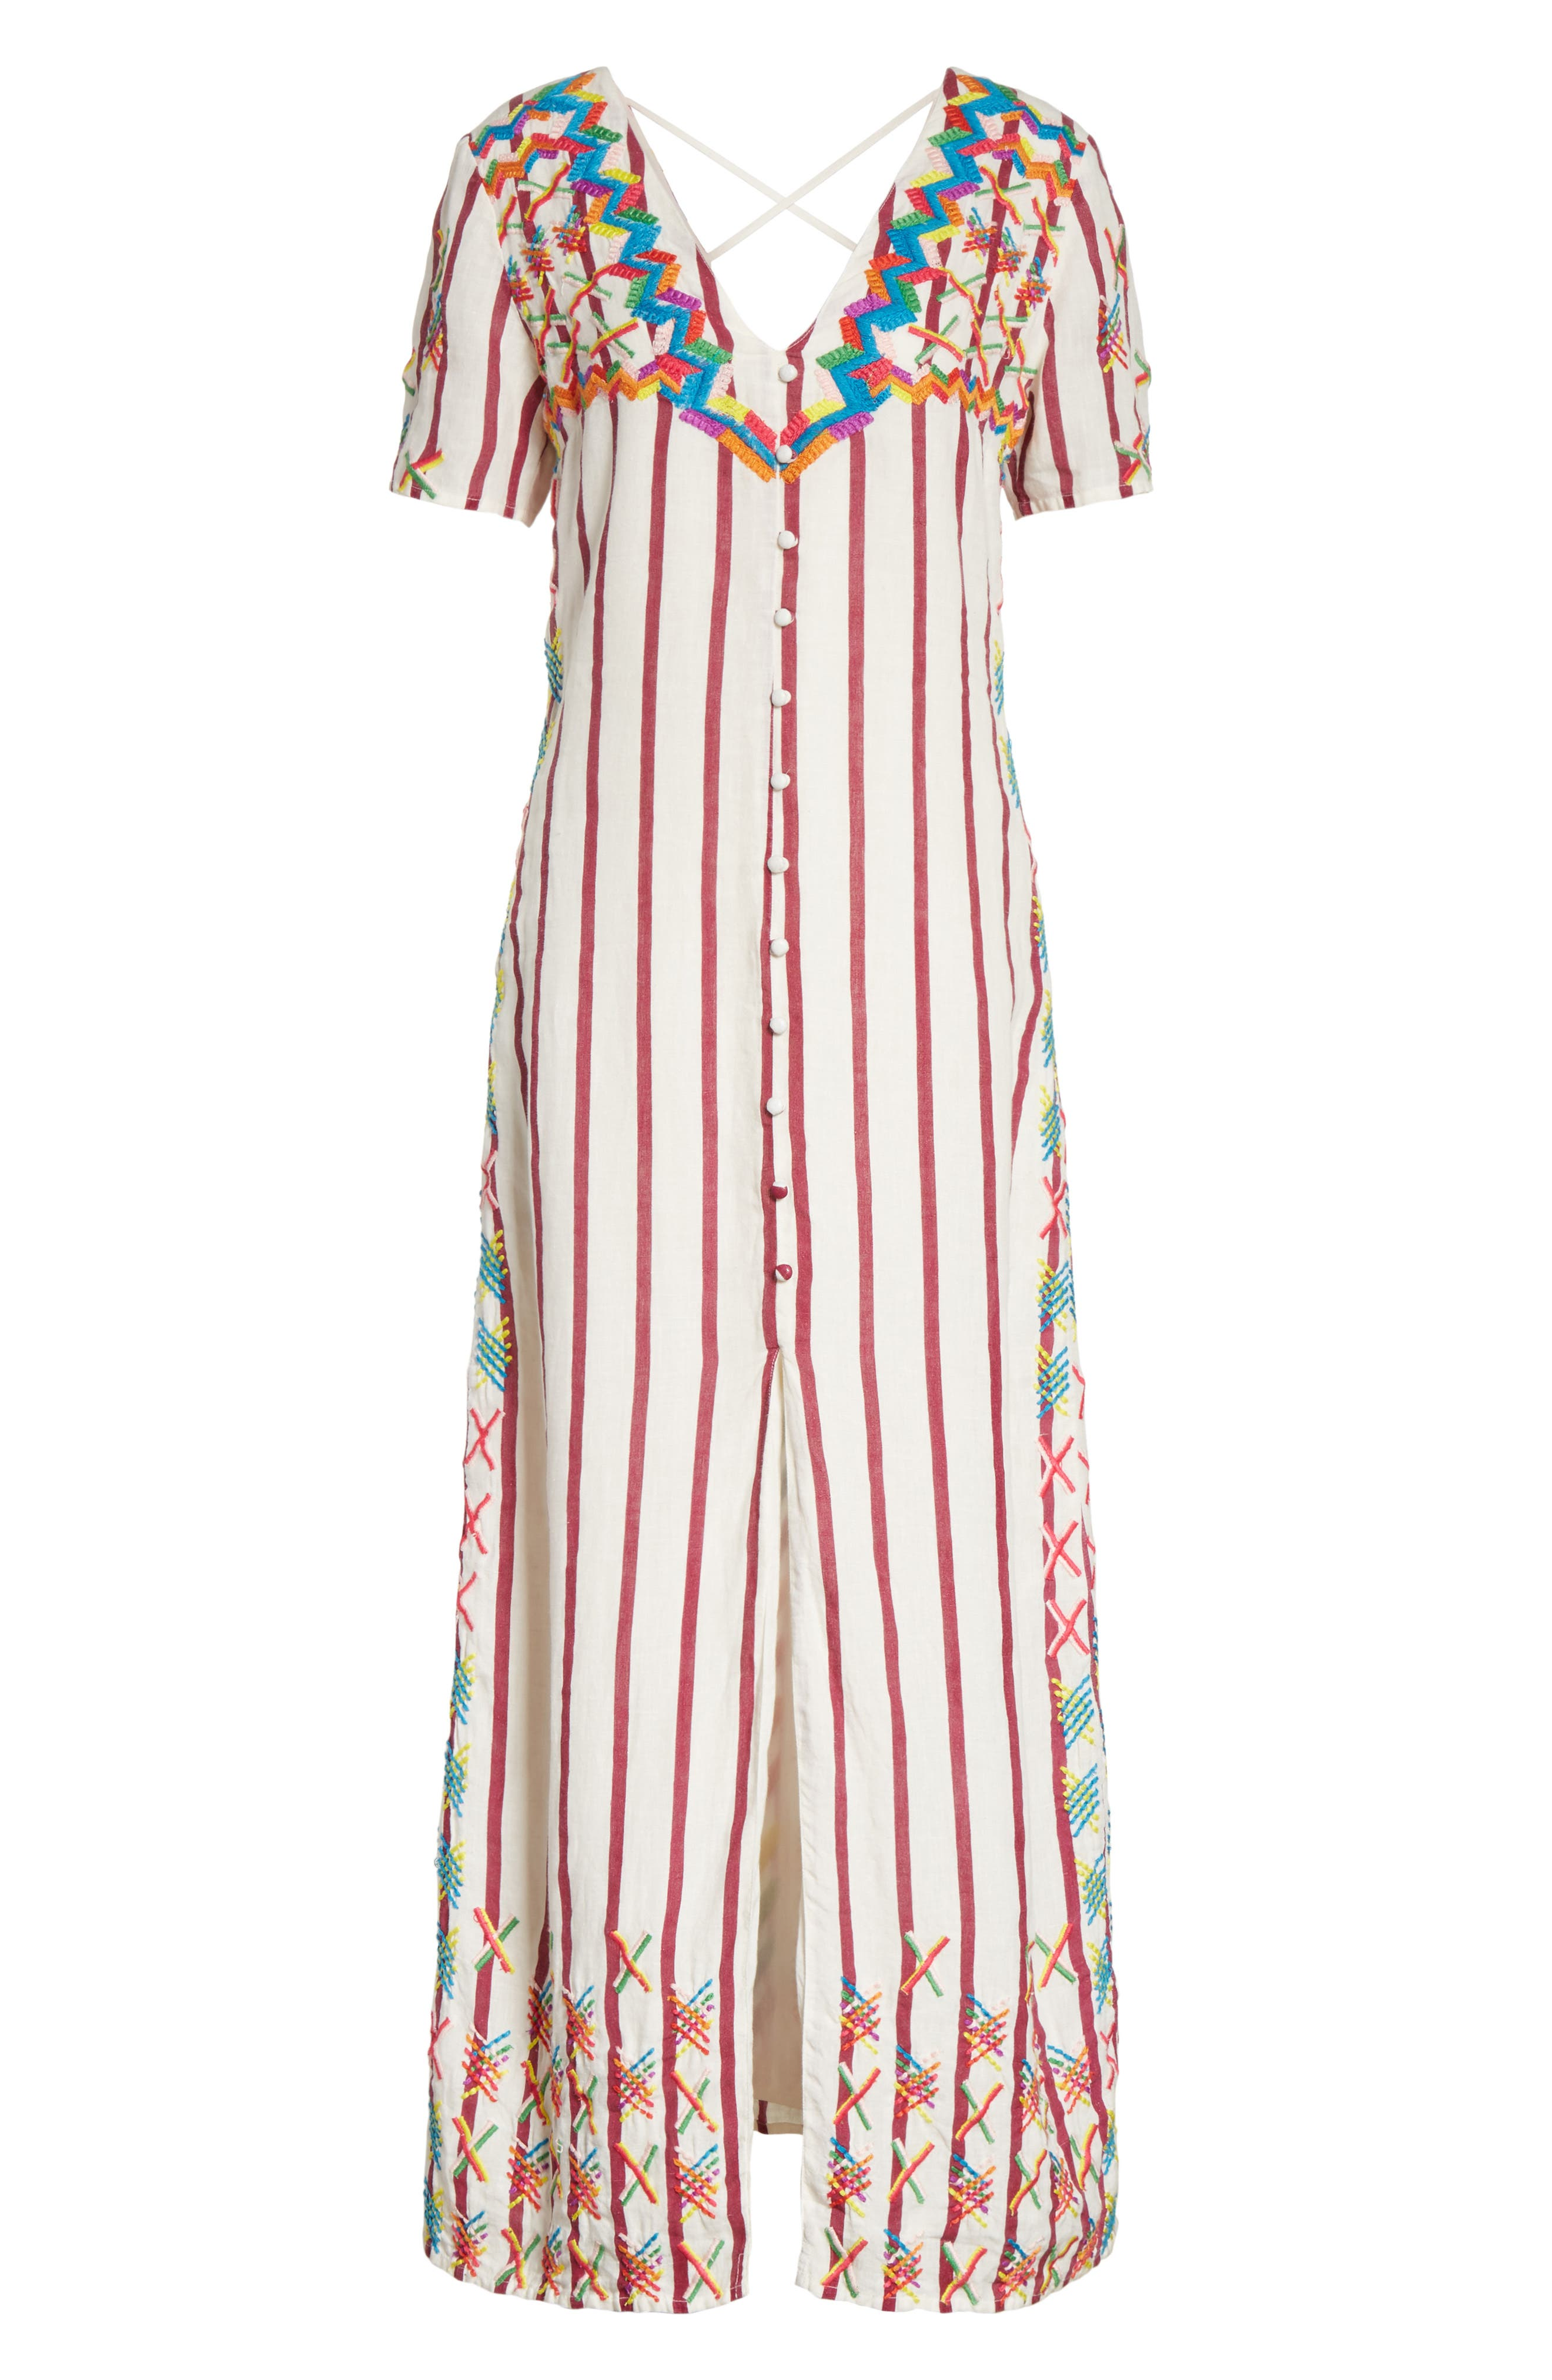 Maria Embroidered Maxi Dress,                             Alternate thumbnail 6, color,                             930